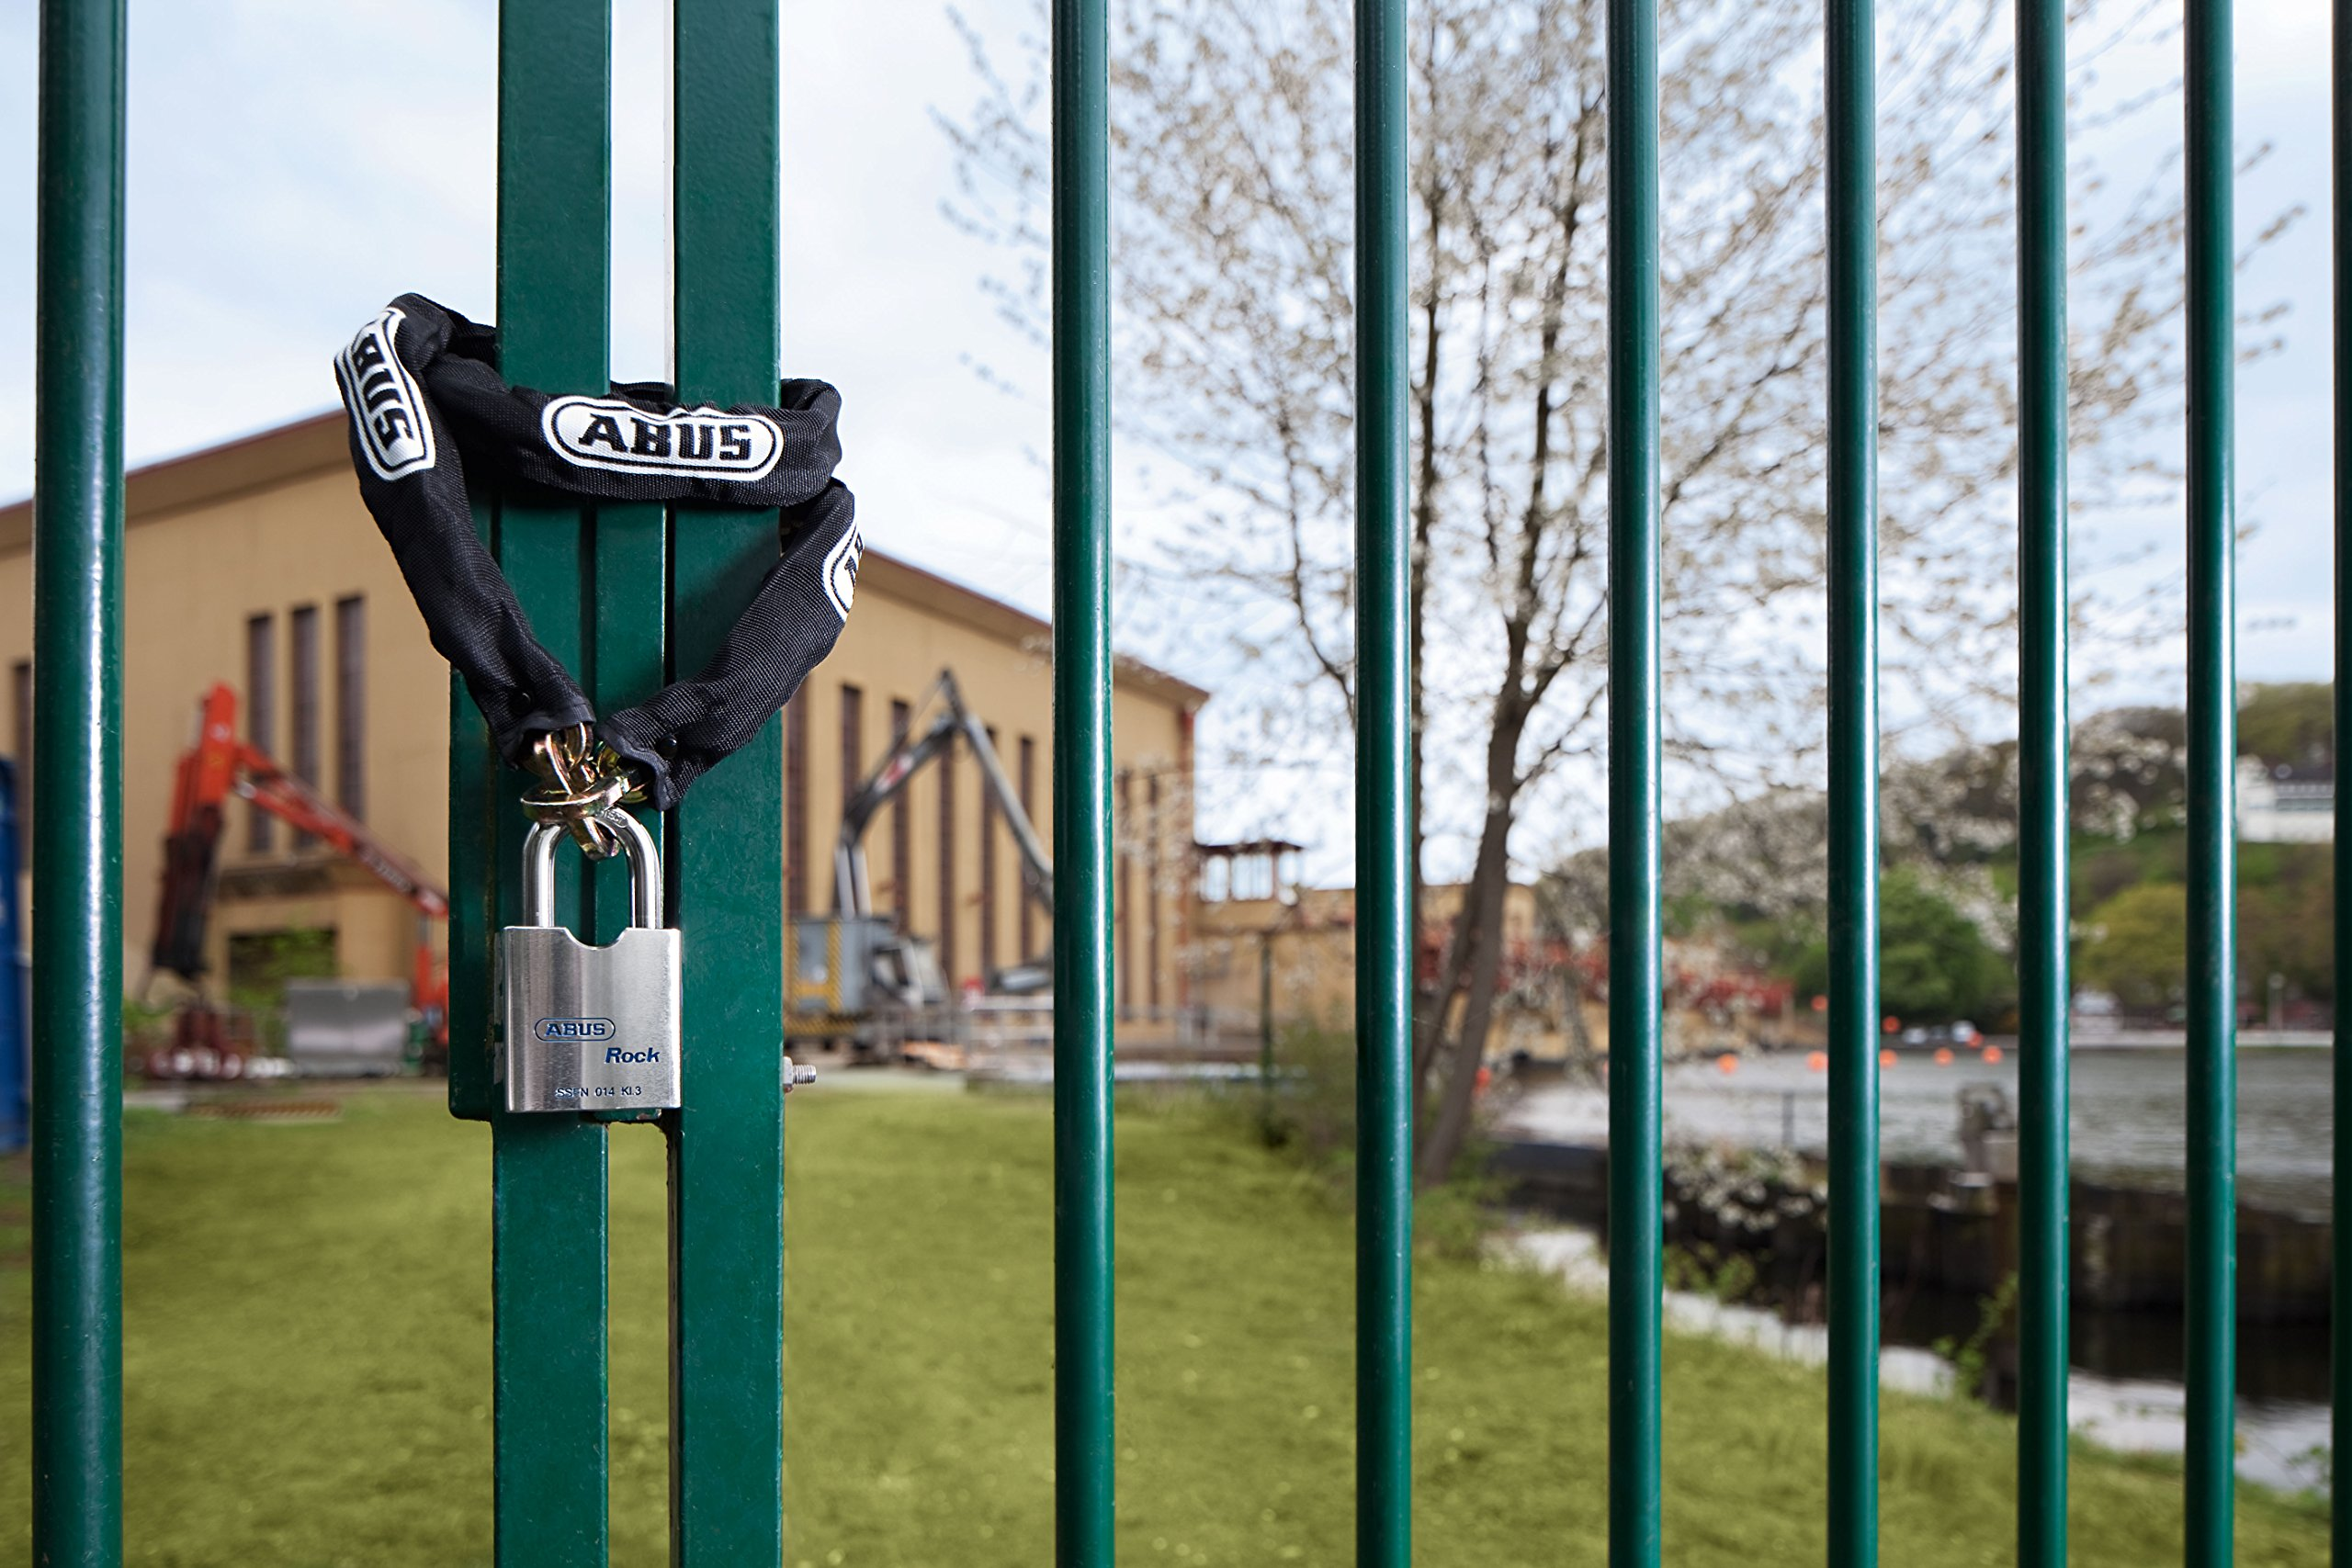 ABUS 6KS 10' Maximum Security Square Chain and Sleeve - 1/4'' Diameter Chain Link by Abus Lock (Image #3)